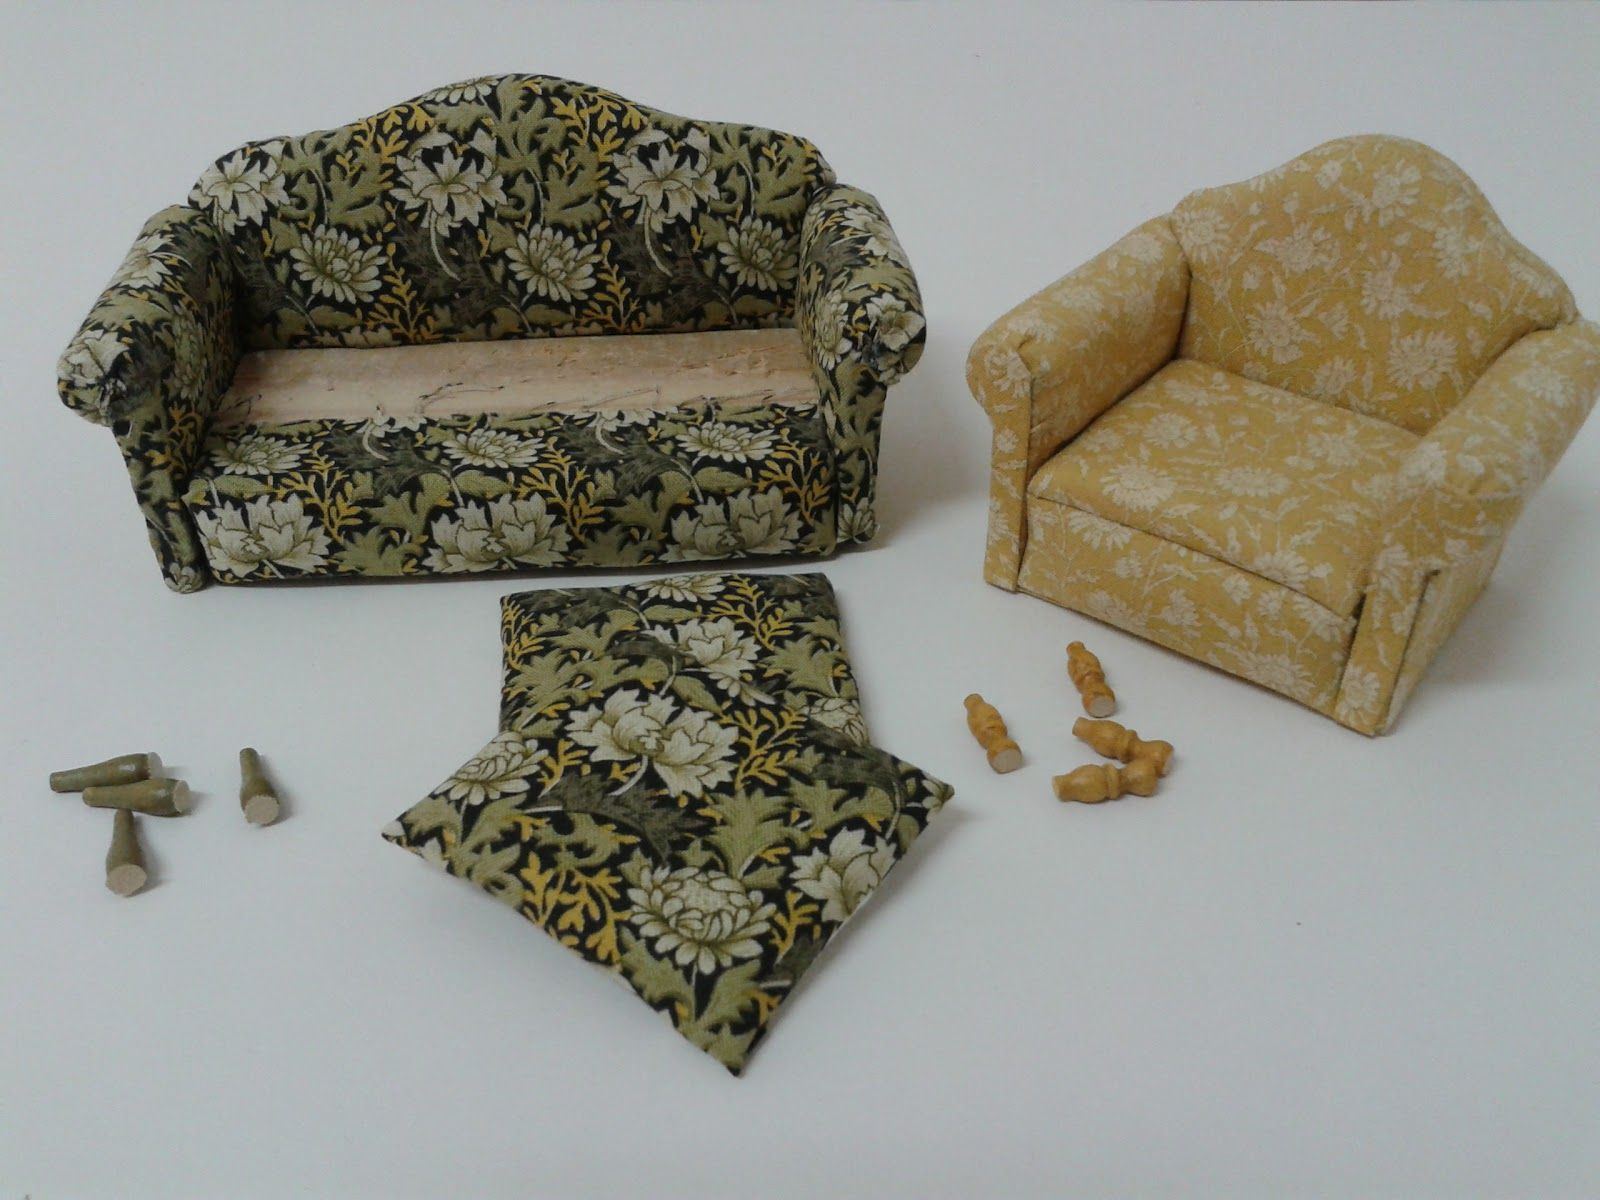 The Living Room Just Needed A Cosy Couch And Easy Chair. But I Hesitated;.  Miniature HousesMiniature DollhouseMiniature FurnitureDollhouse ...